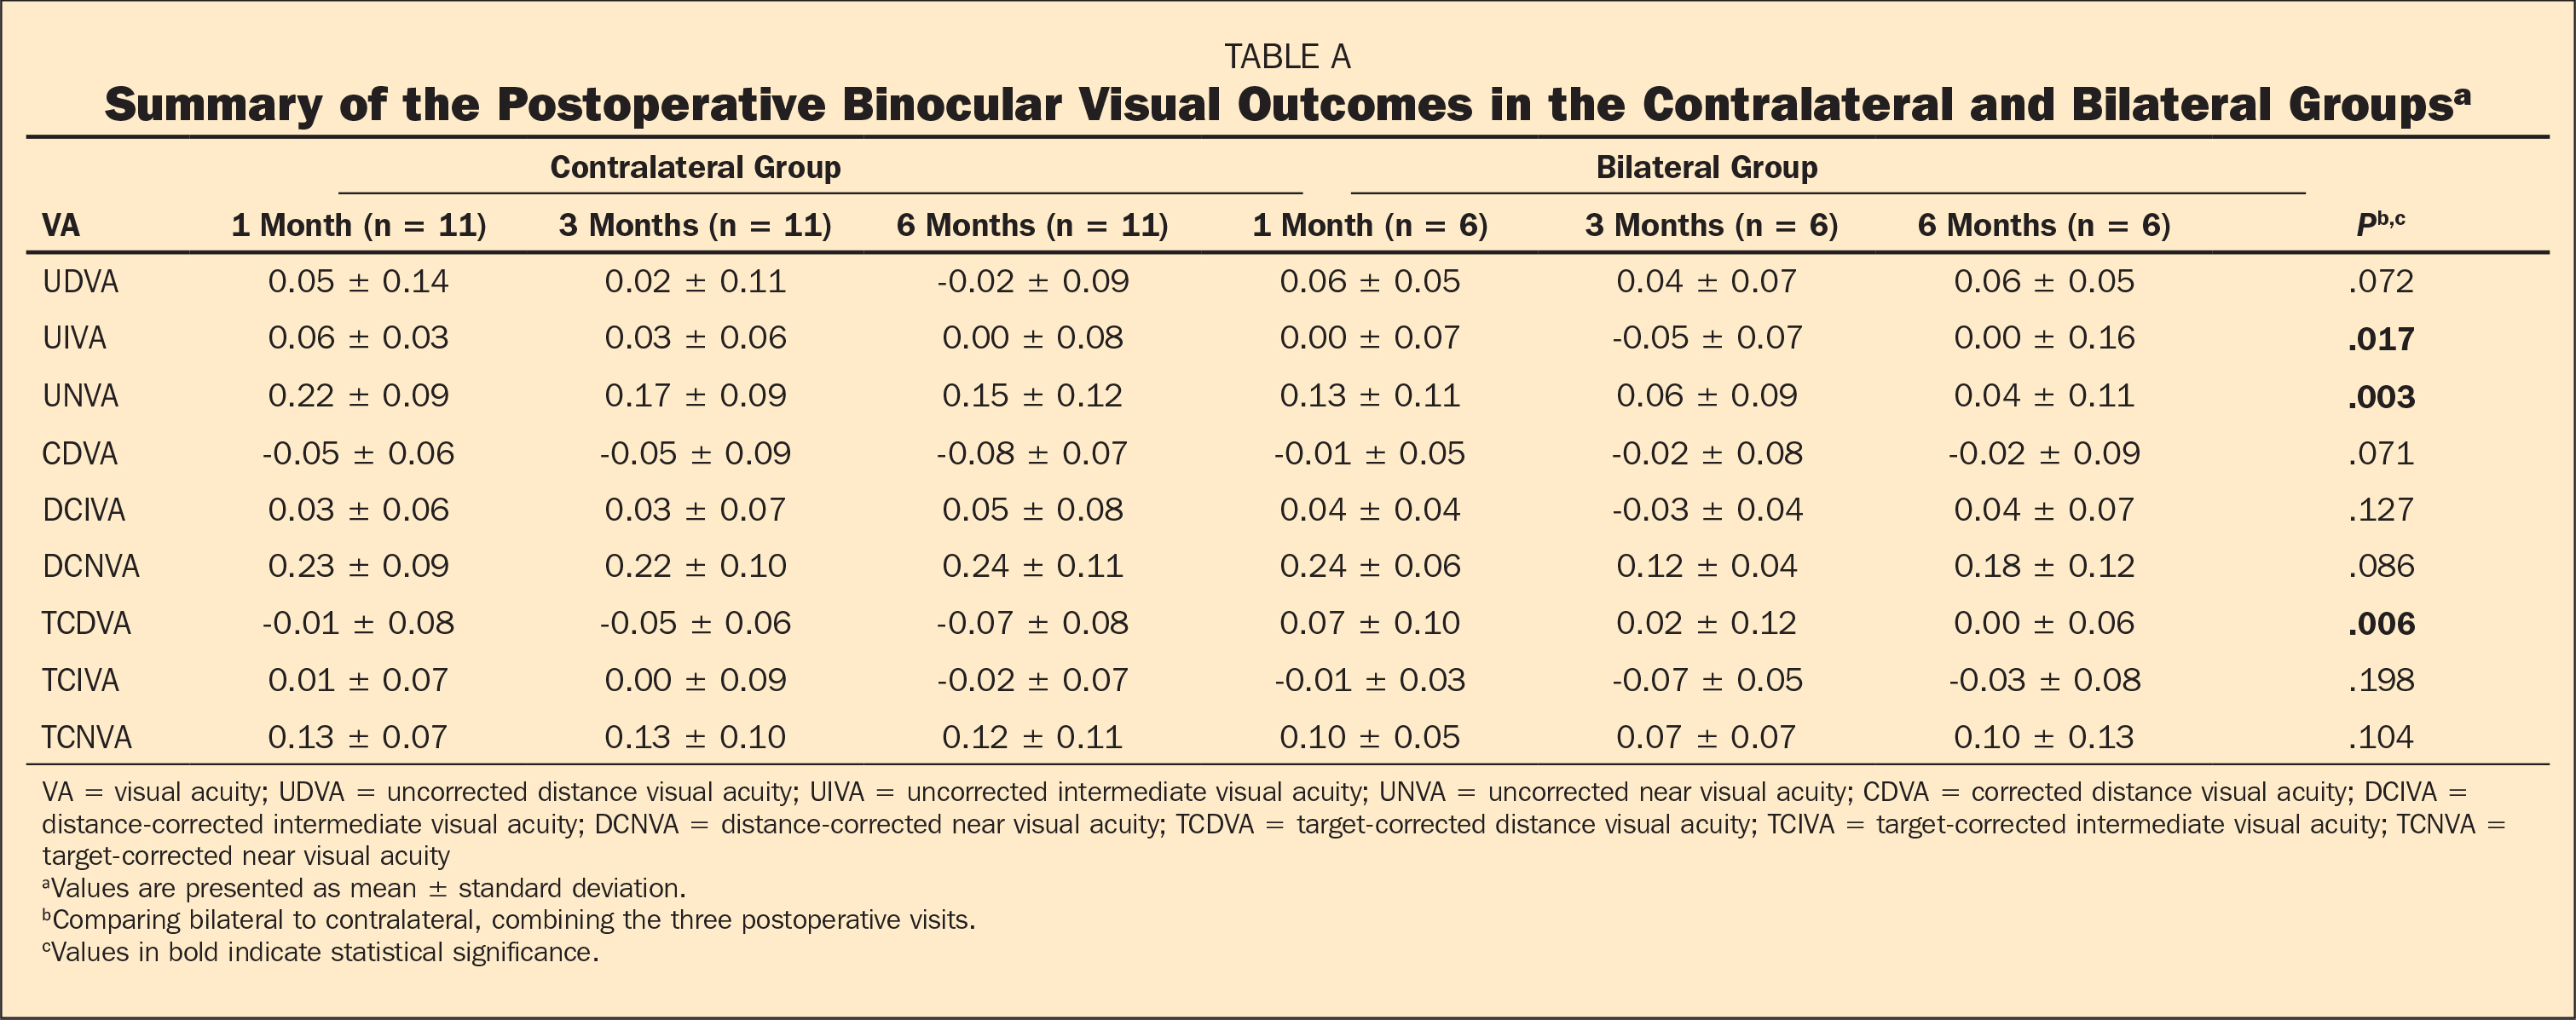 Summary of the Postoperative Binocular Visual Outcomes in the Contralateral and Bilateral Groupsa